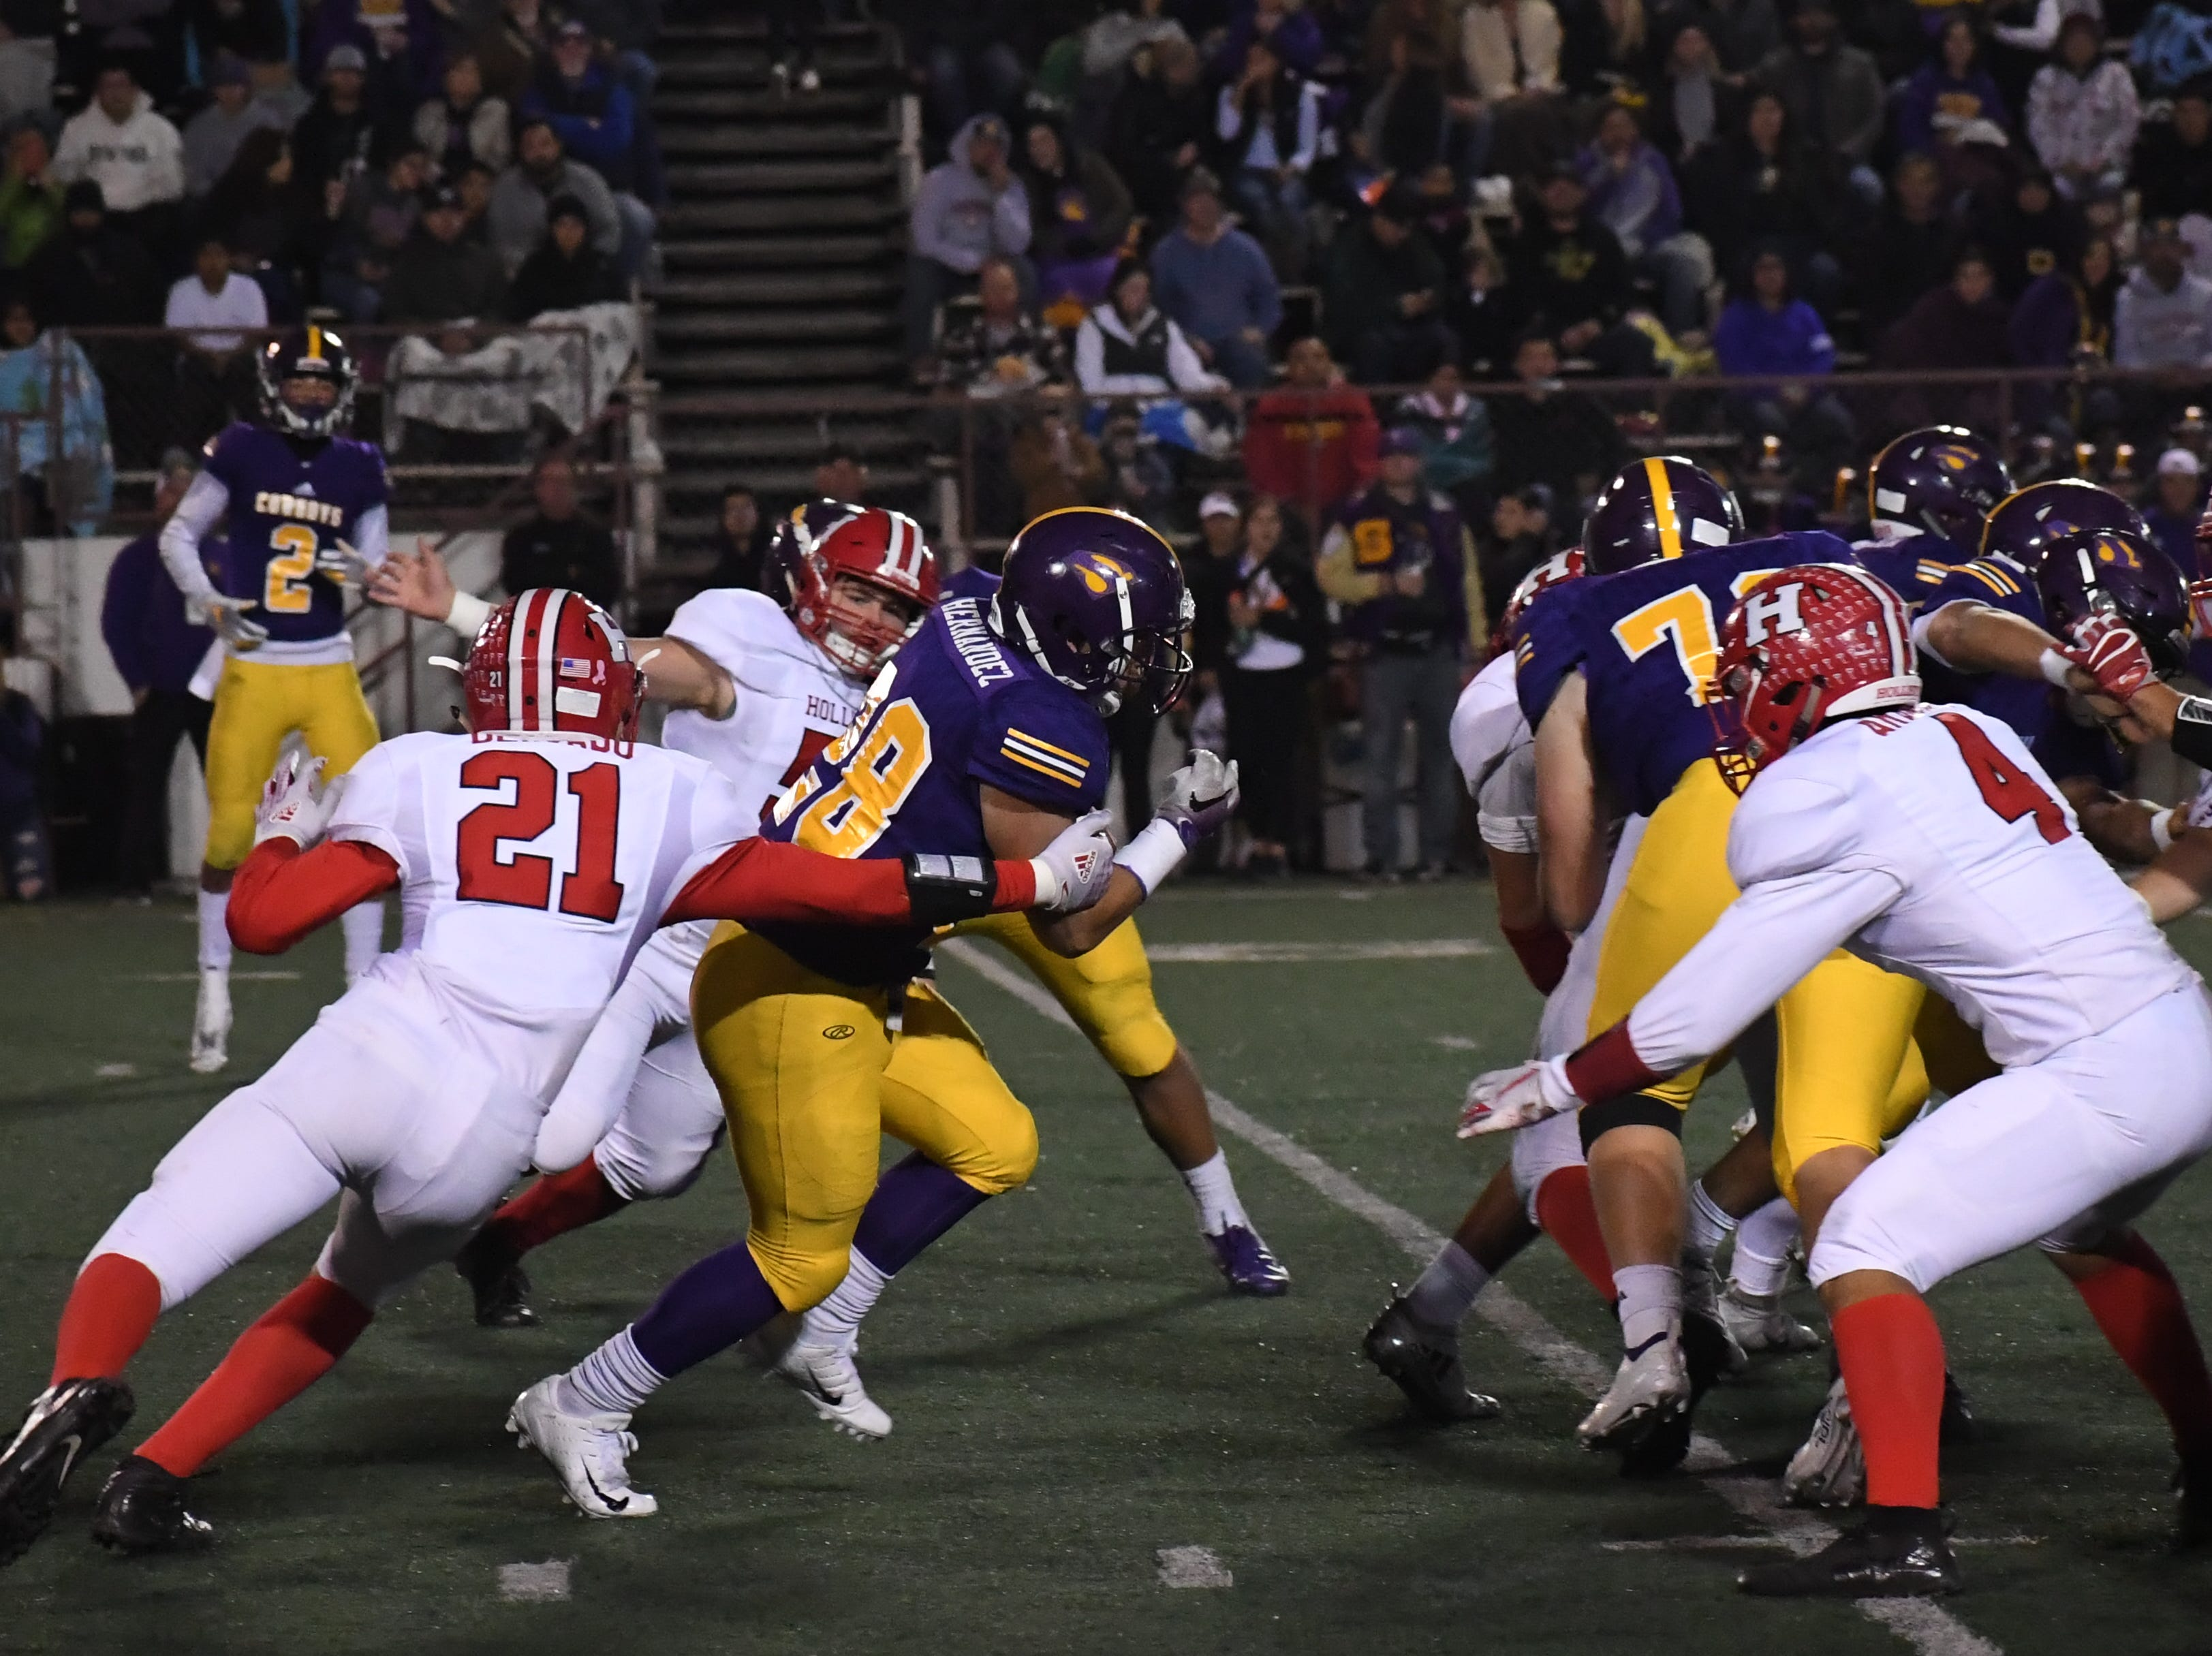 Running back Abraham Hernandez (28)  evades an arm tackle while running through the hole.